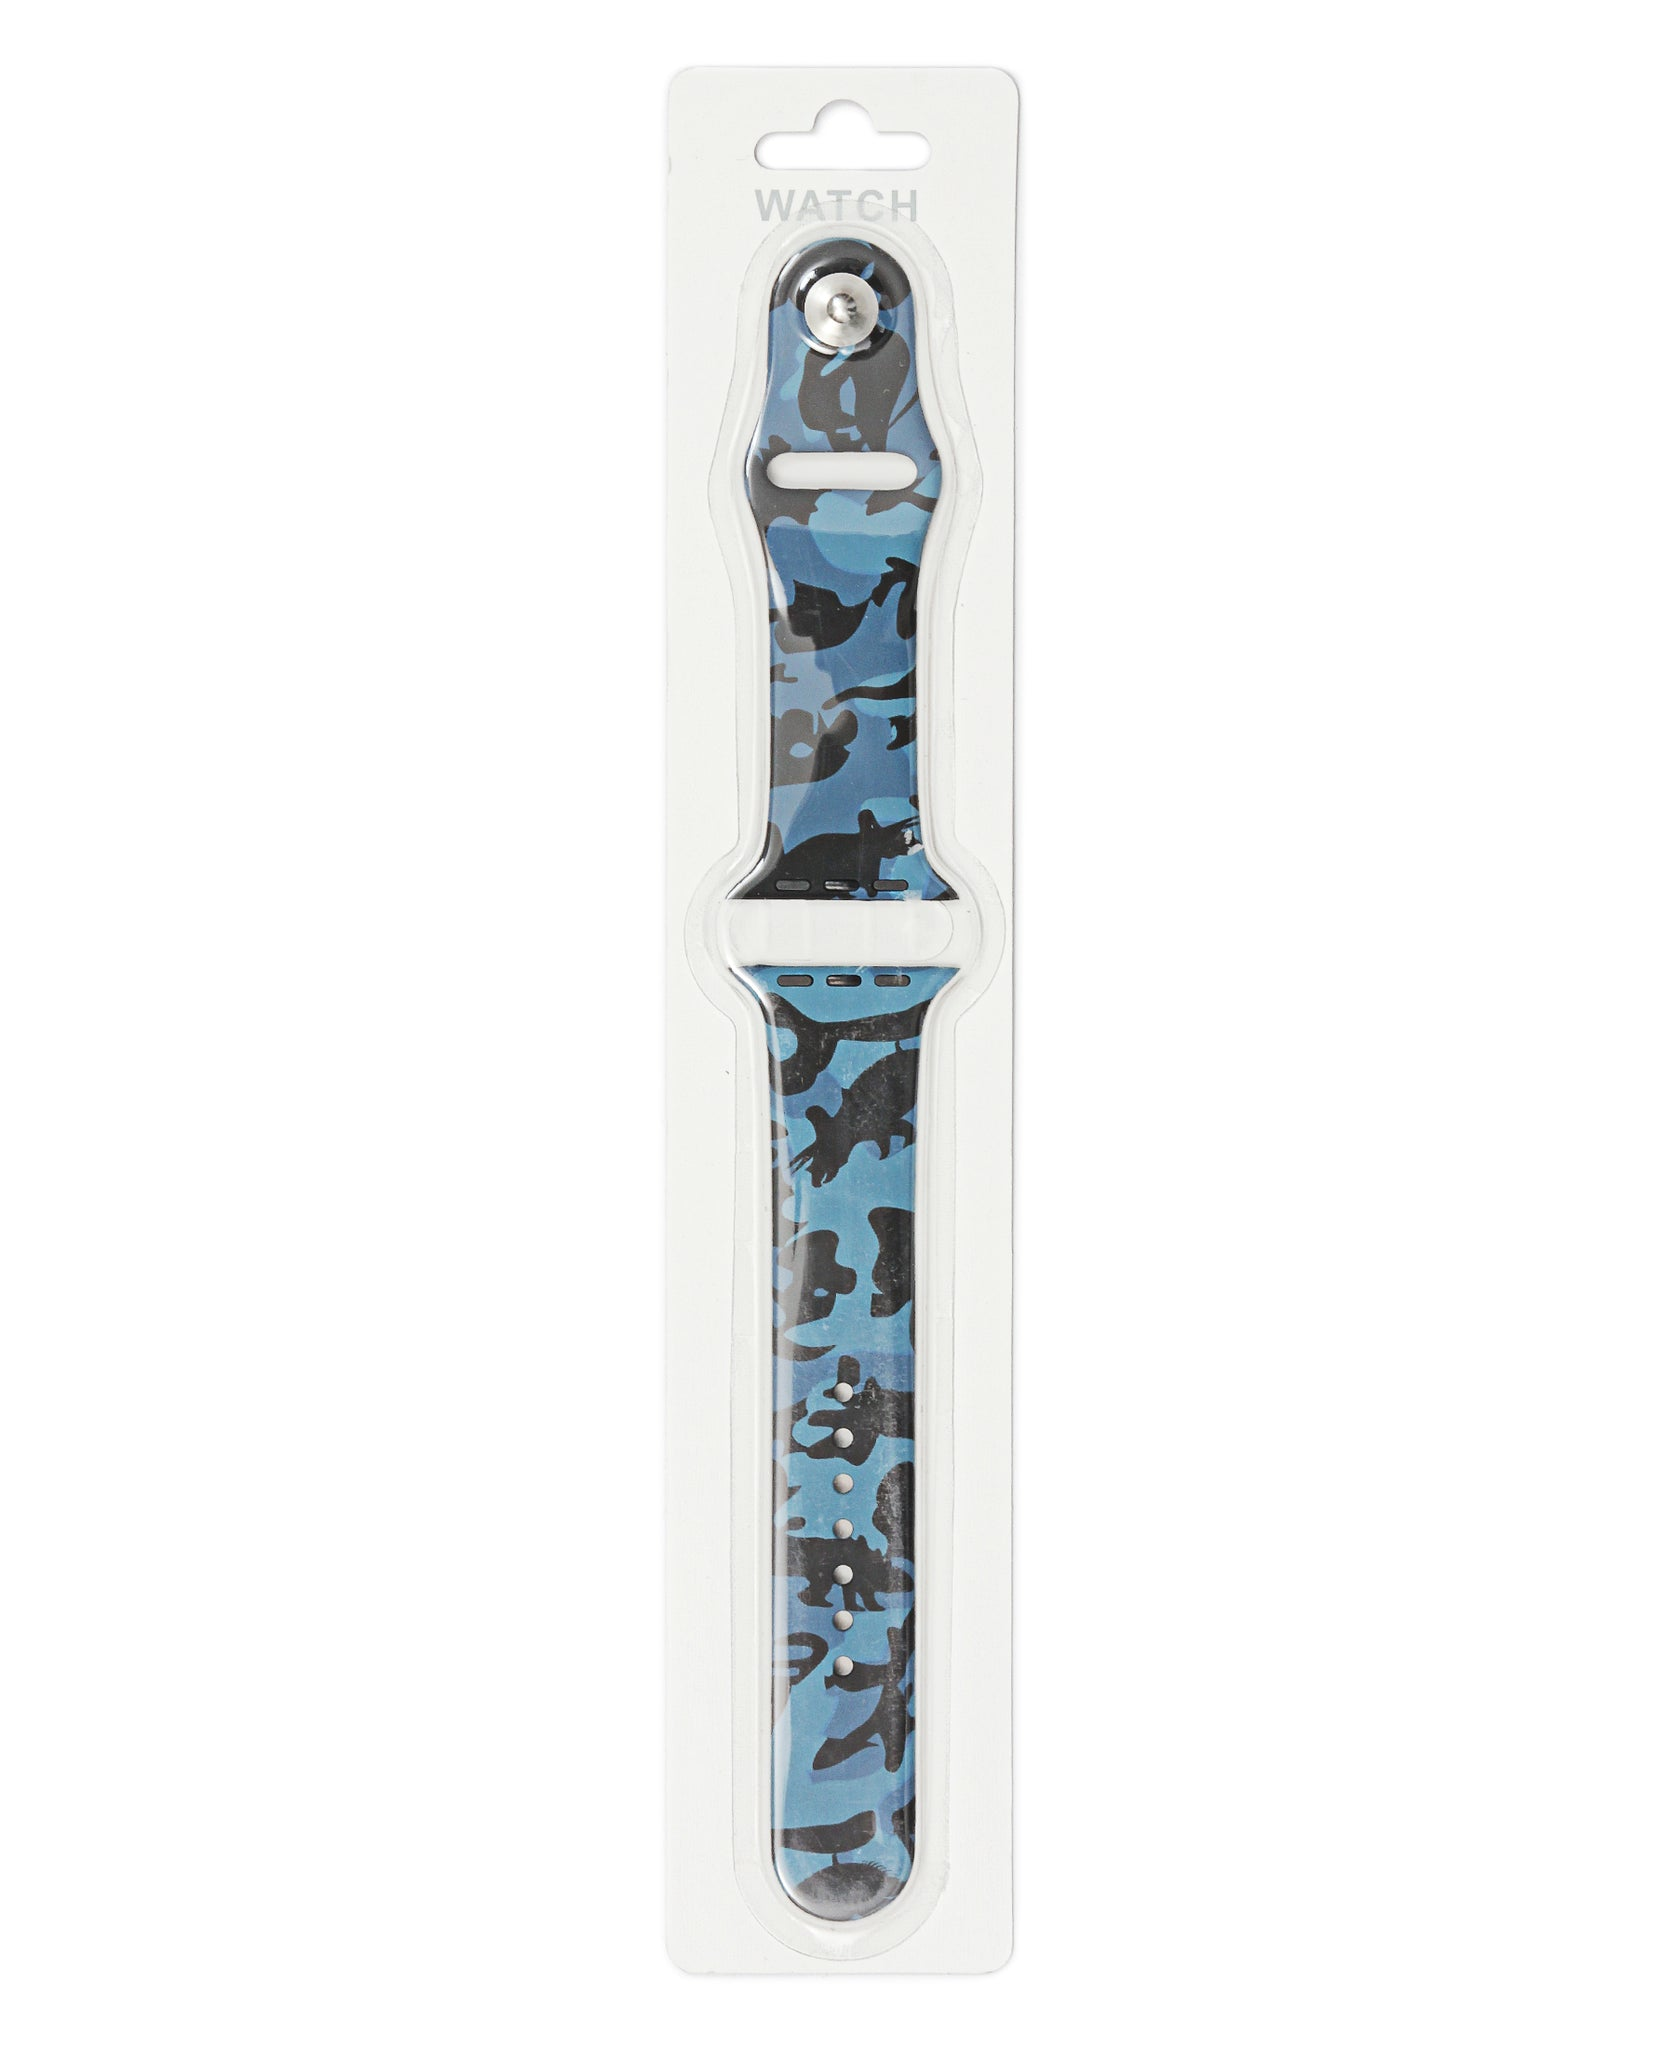 42/44mm Camo Apple Watch Band - Blue